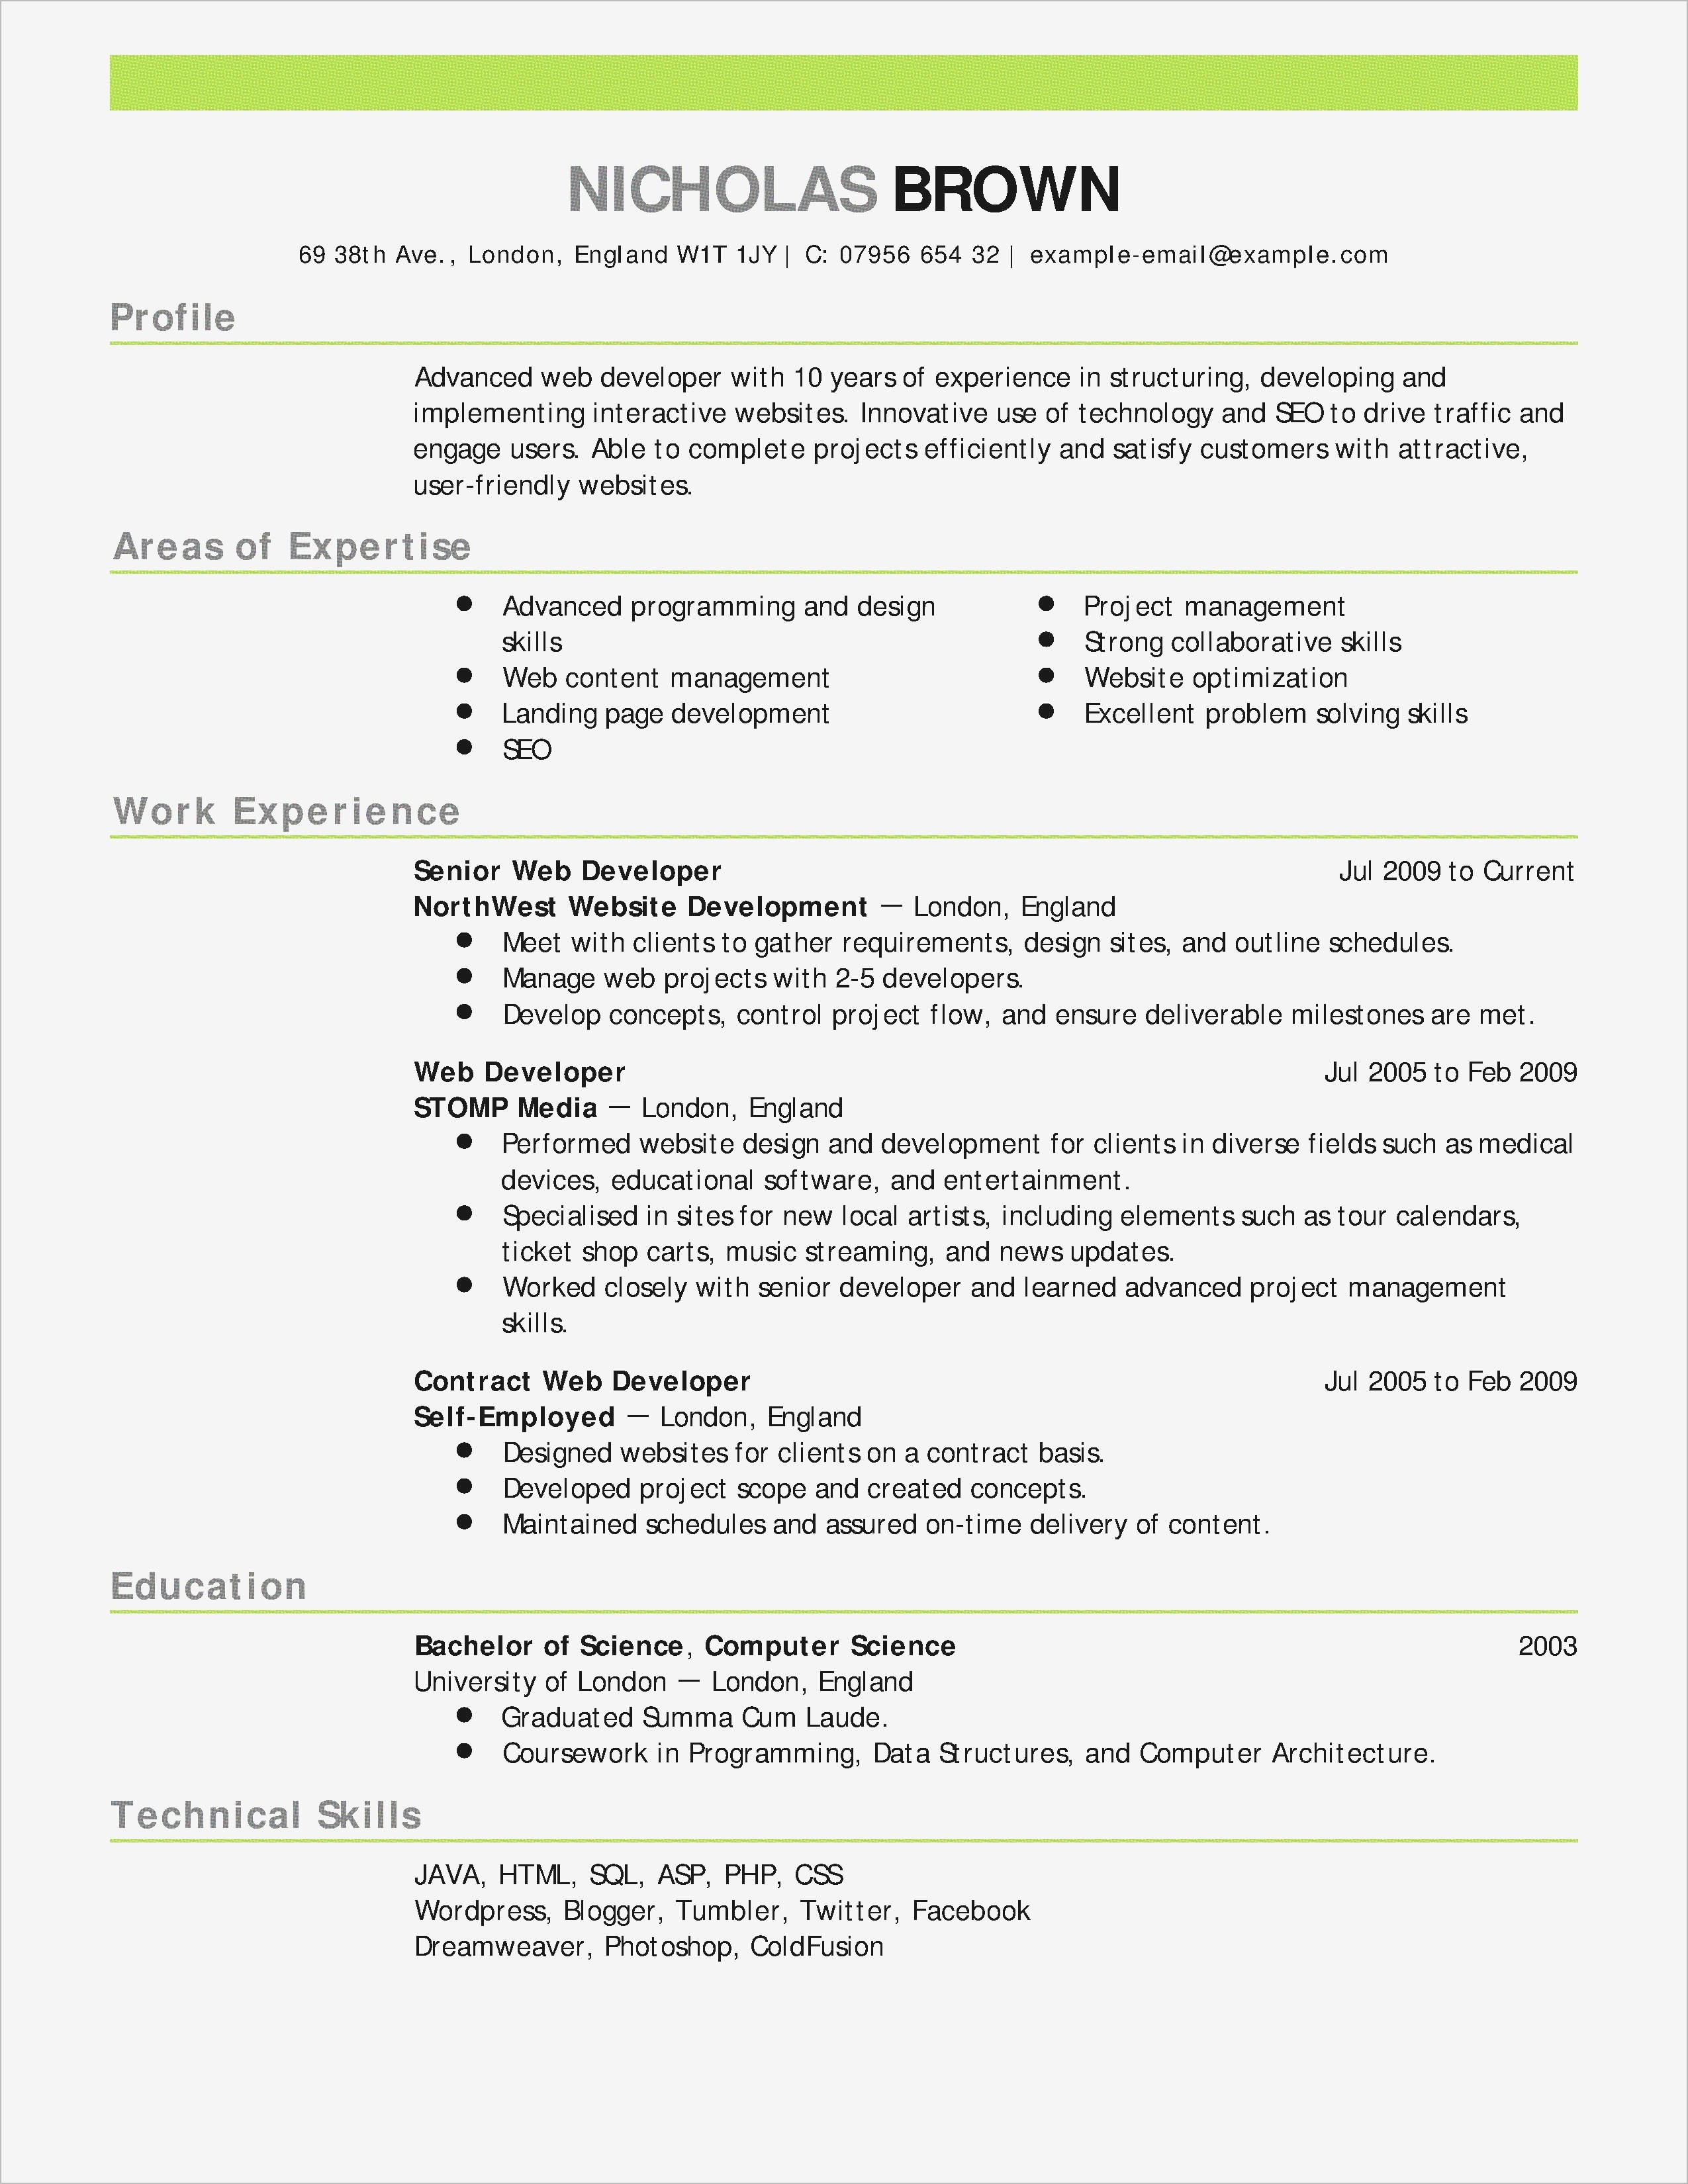 Resume with References - Maintenance Cover Letter Template Sample